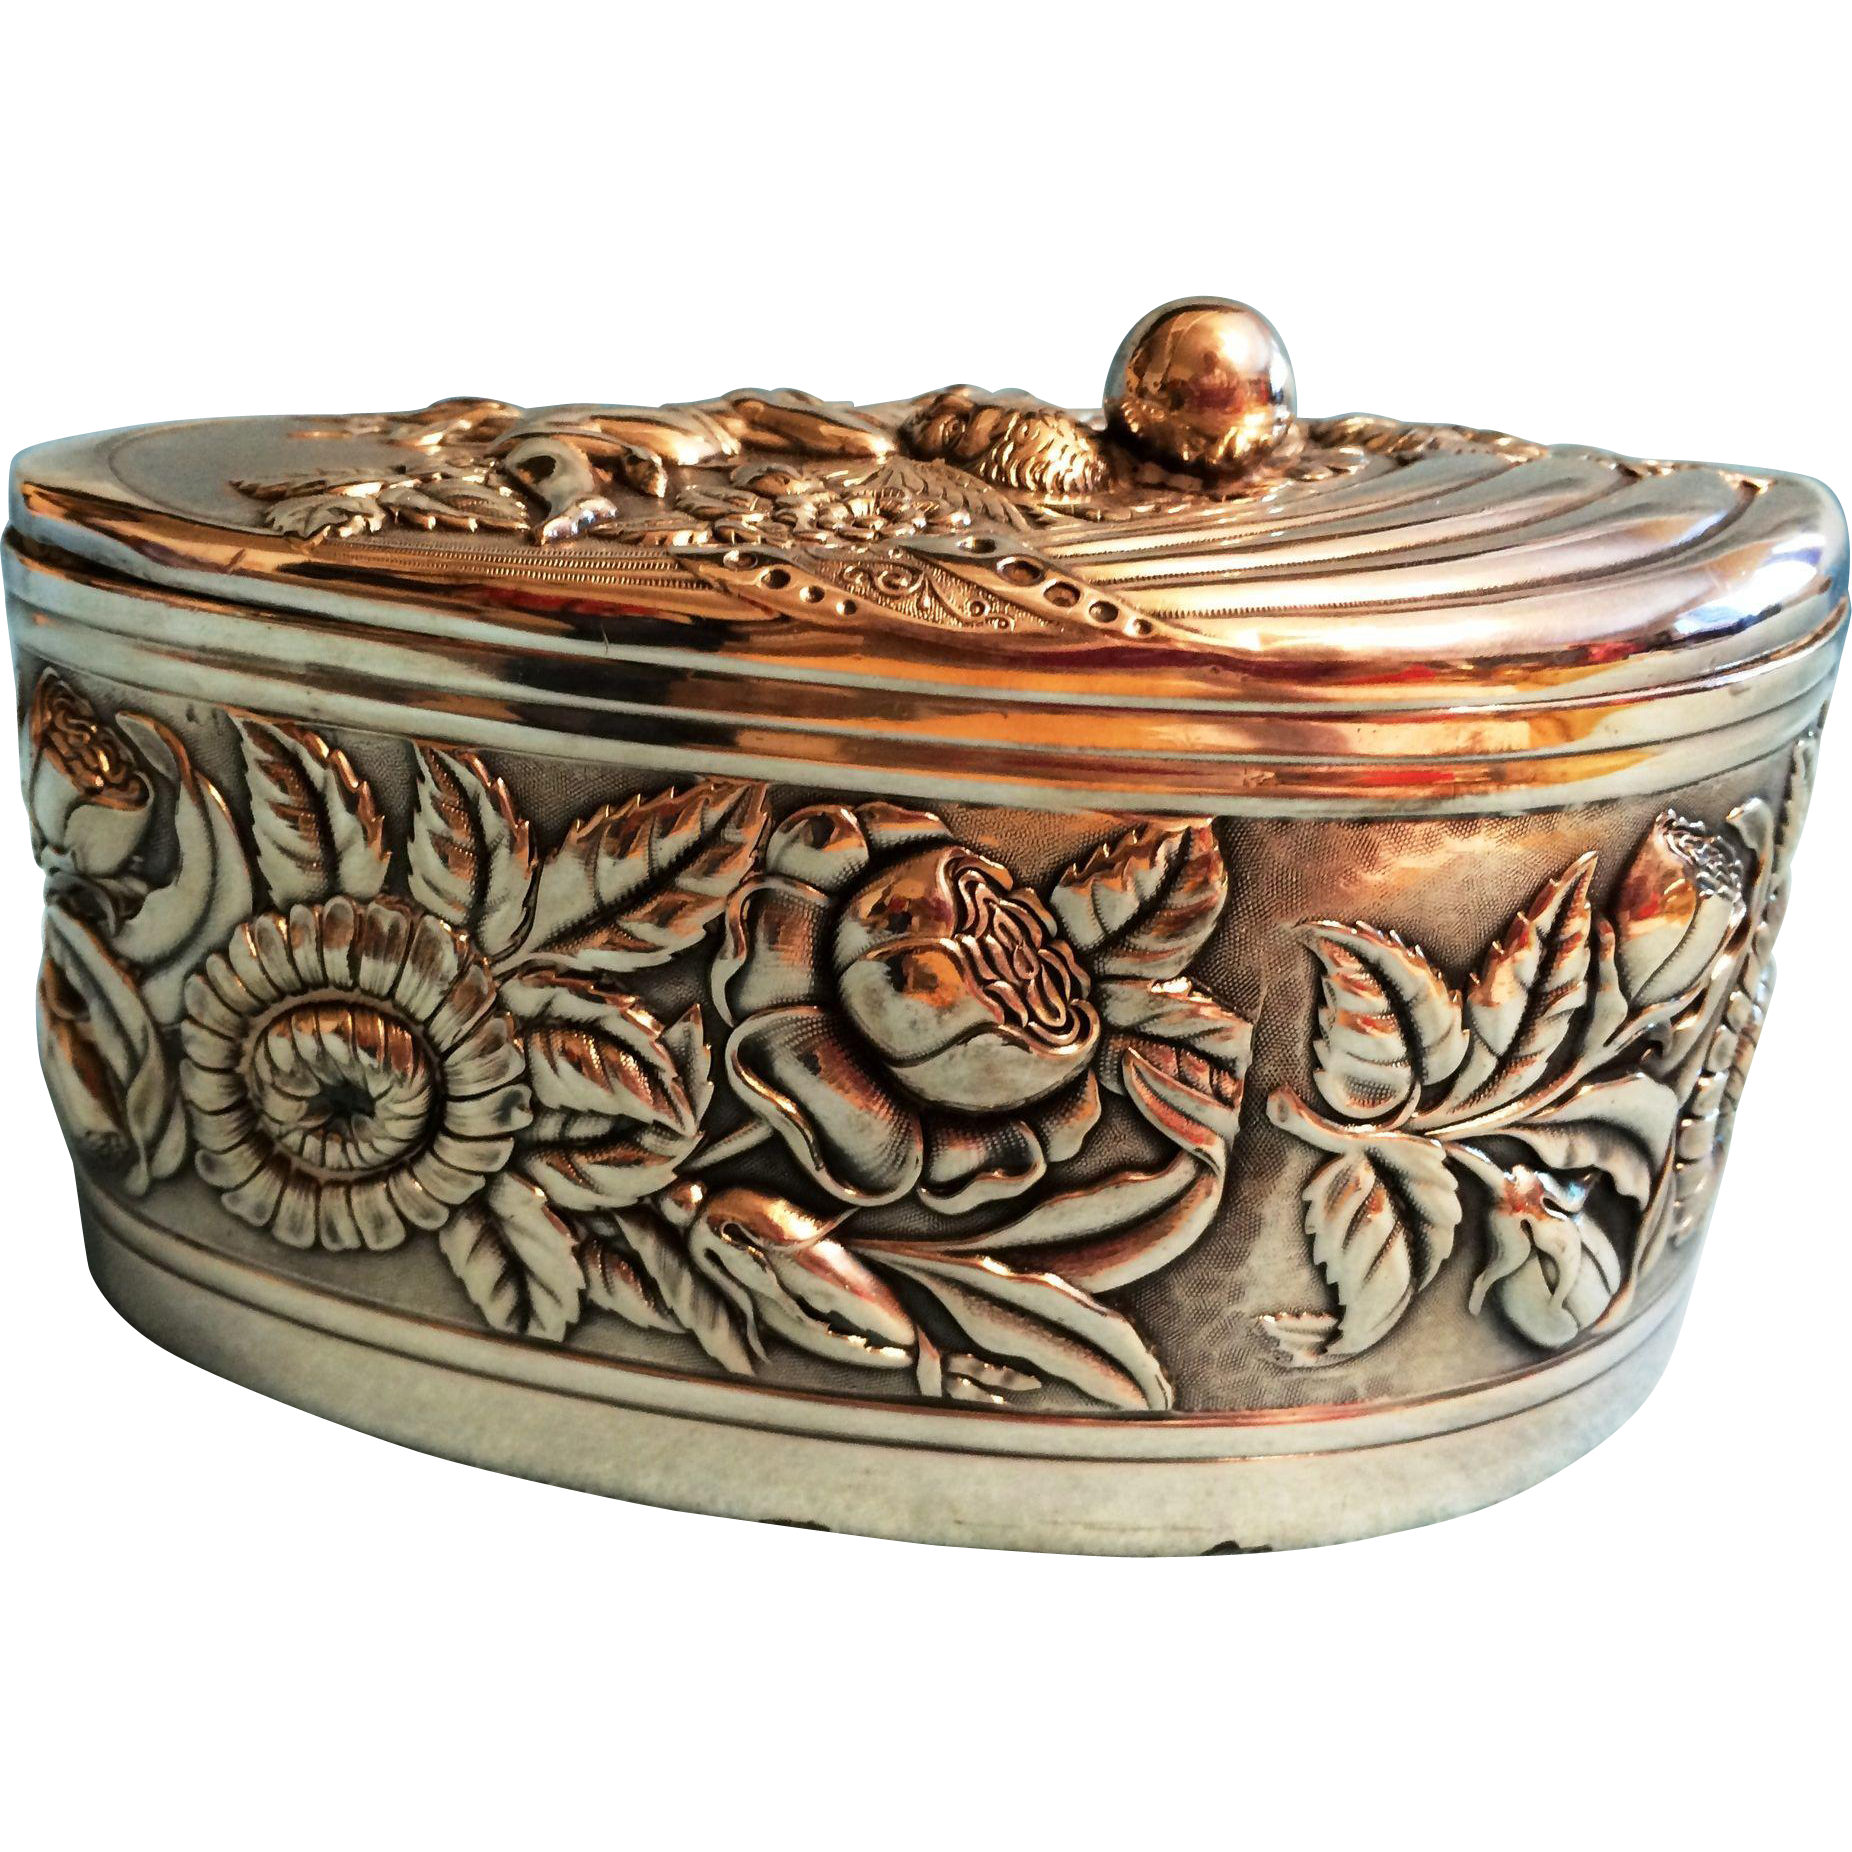 Antique Derby Silver Co trinket dresser box repousse flowers with Angel on lid